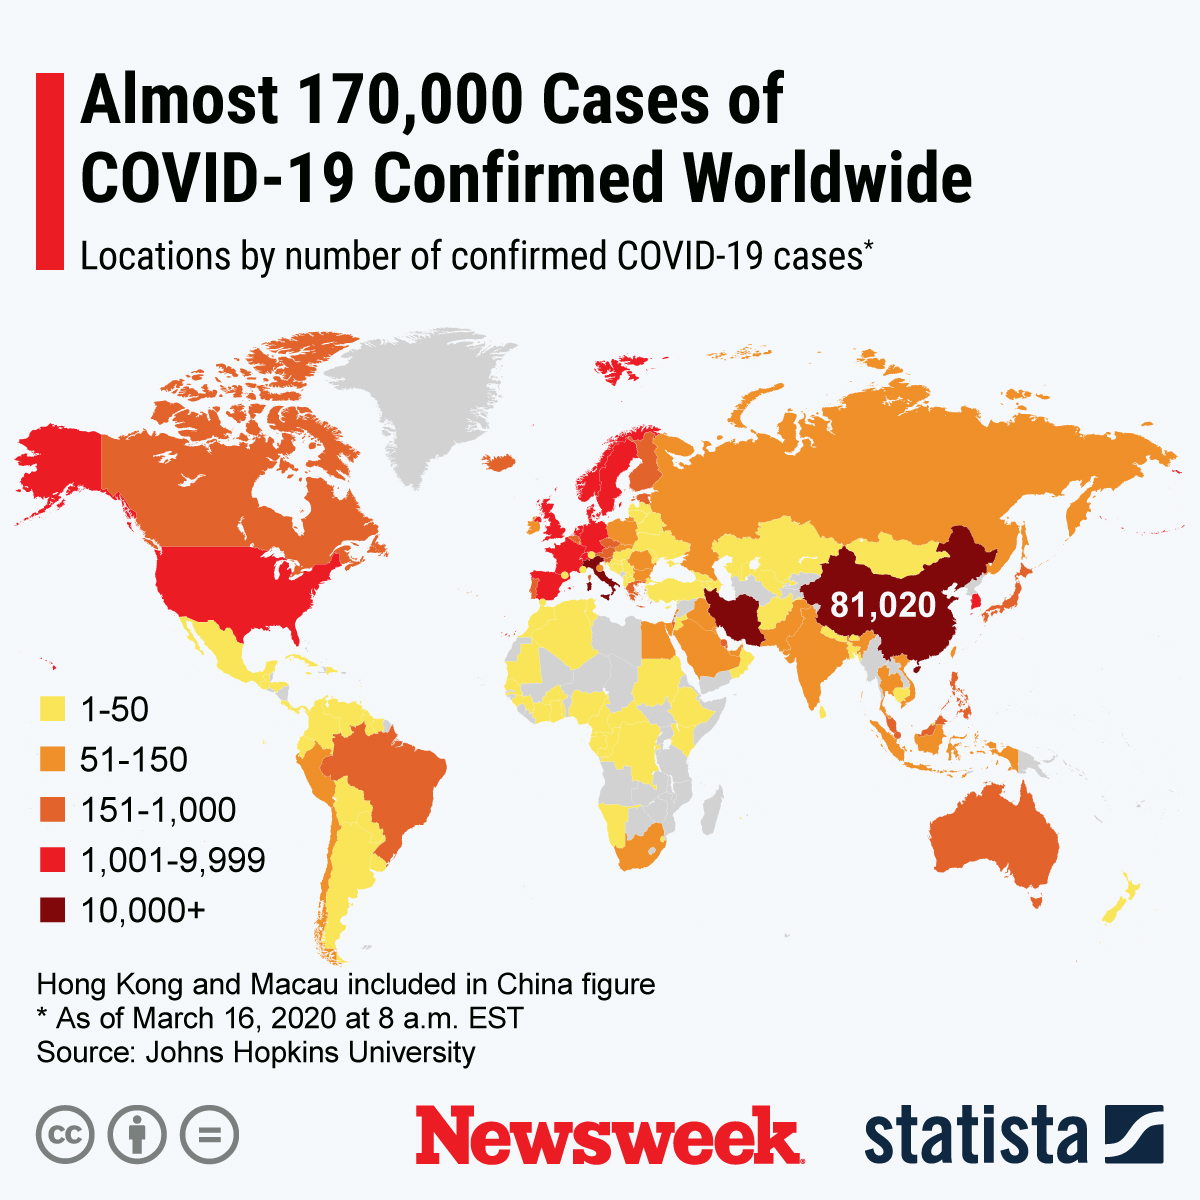 COVID cases around the world - map and stats by Newsweek and Statista